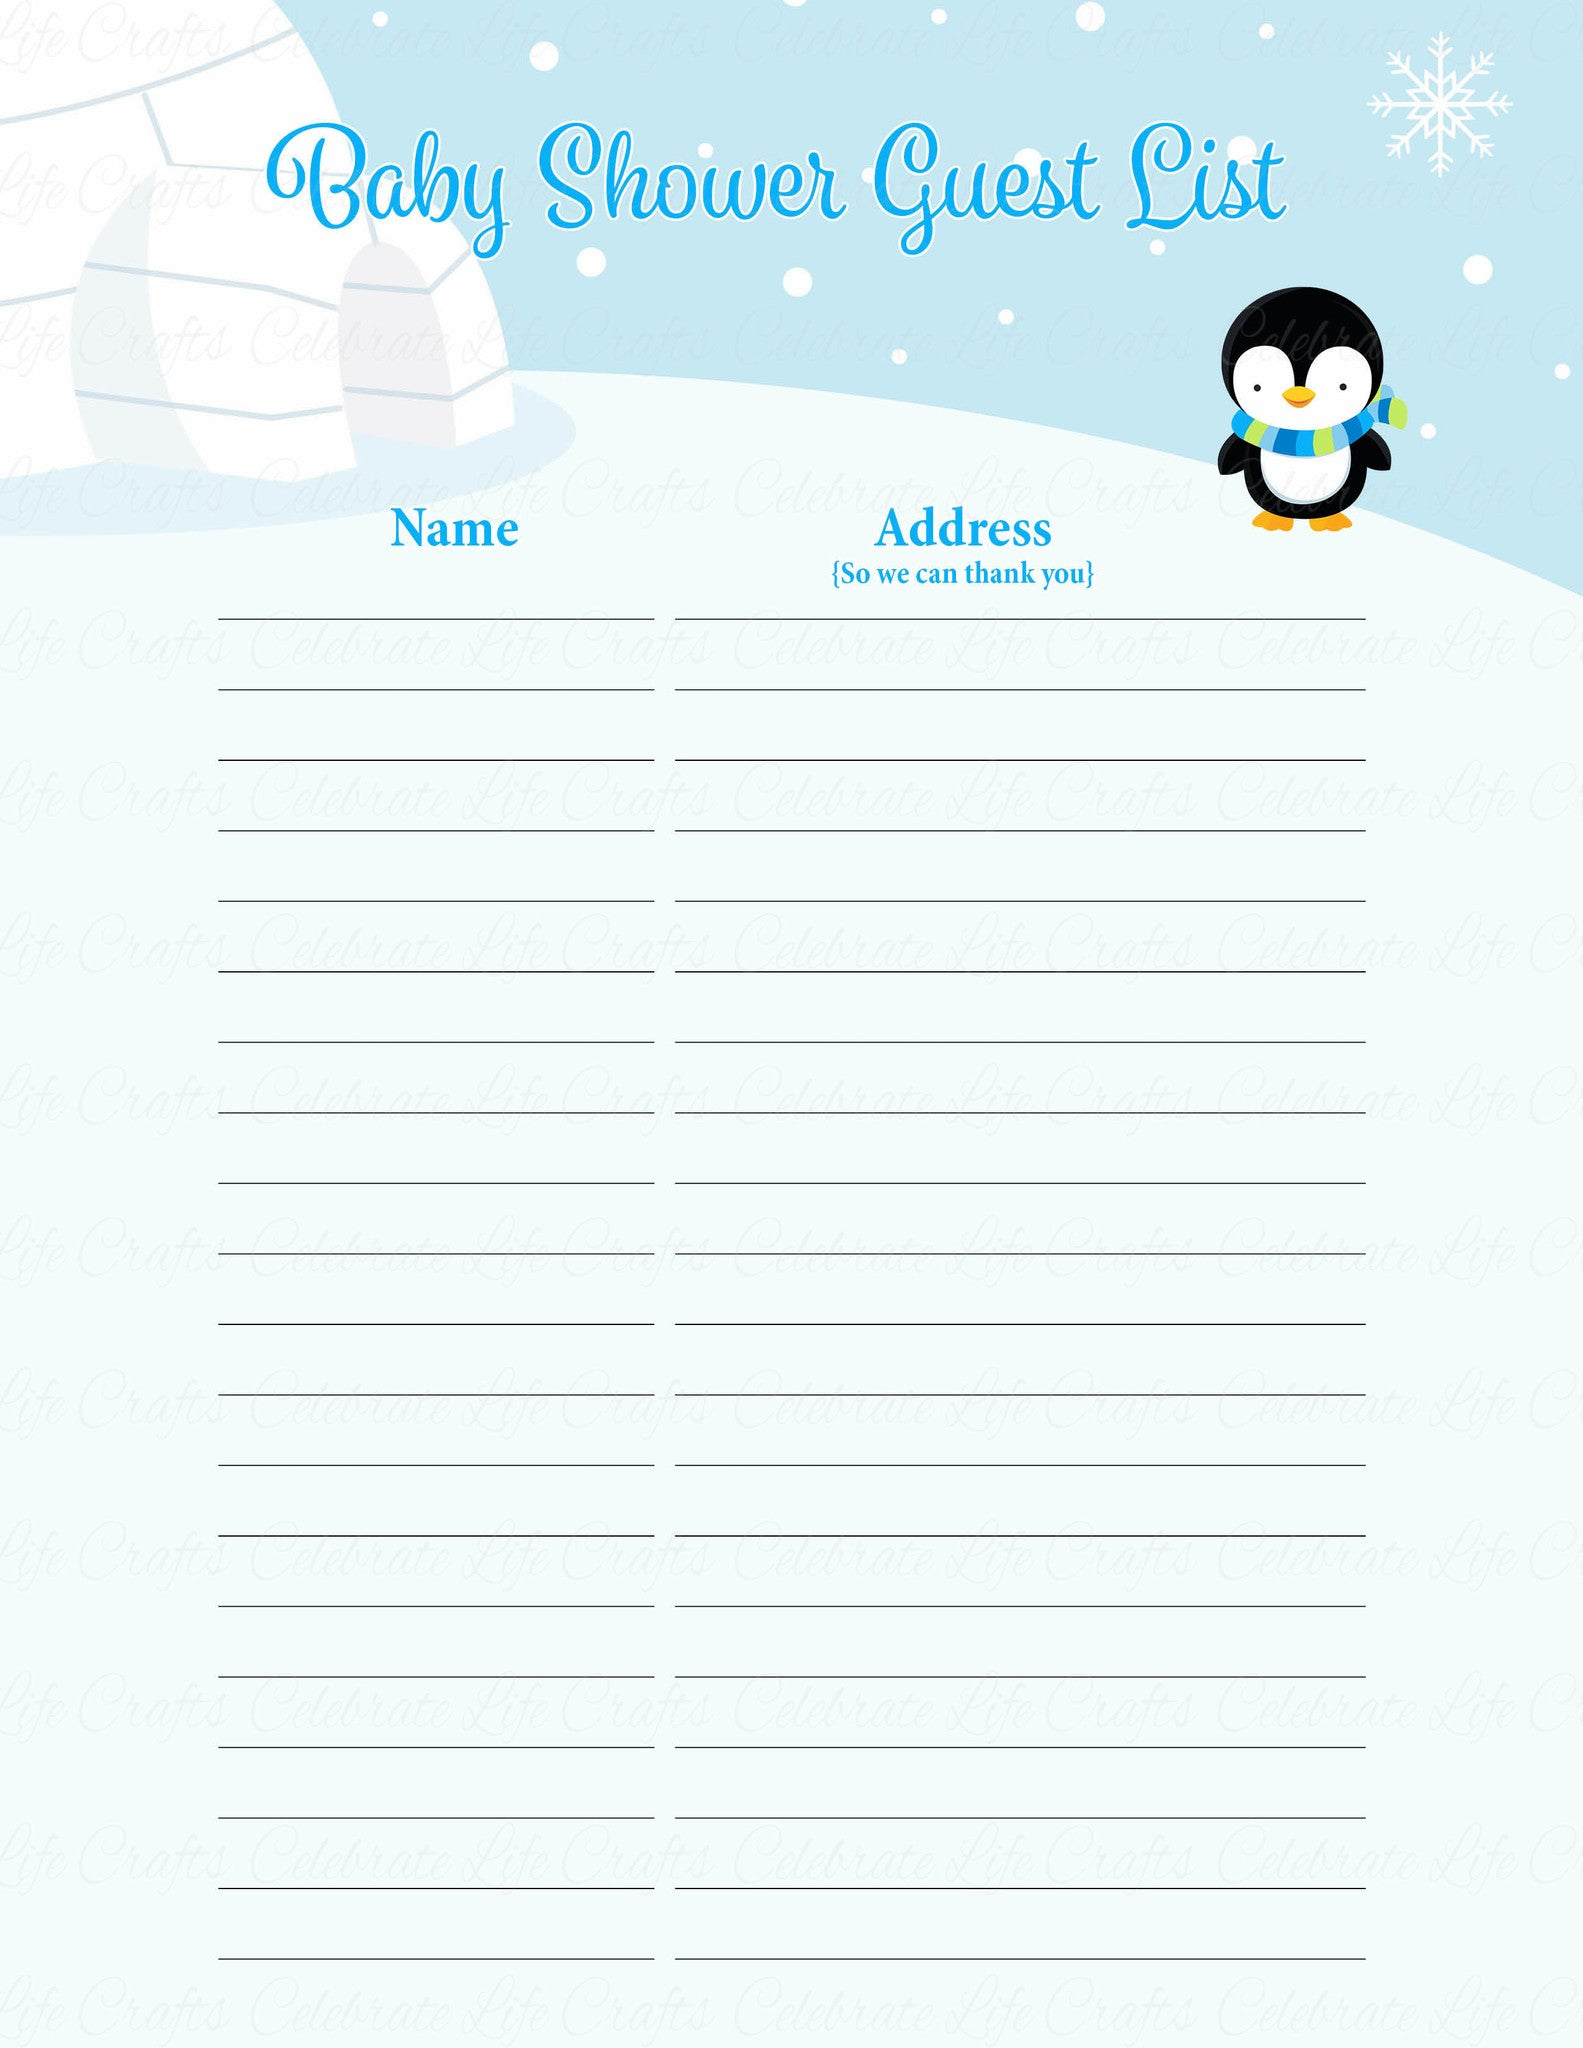 ... Baby Shower Guest List Set   Printable Download   Blue Penguin Winter Baby  Shower Decorations    Printable Baby Shower Guest List